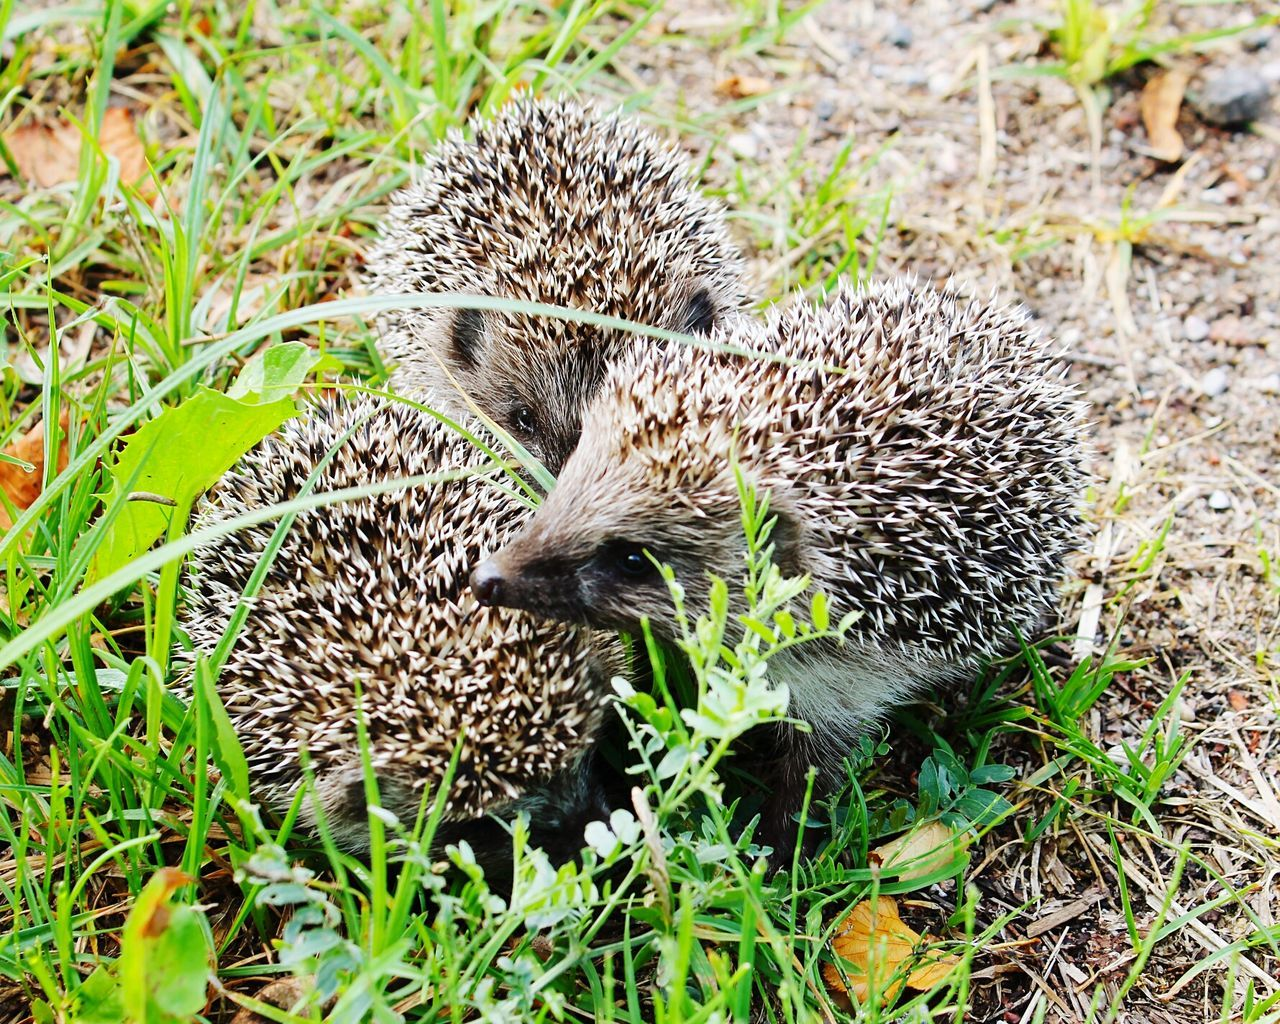 Hedgehogs On The Road Hedgehogs Baby Hedgehog Close-up No People Outdoors Animals In The Wild Sunlight Animal Themes Nature Photography Green Color Beauty In Nature Day